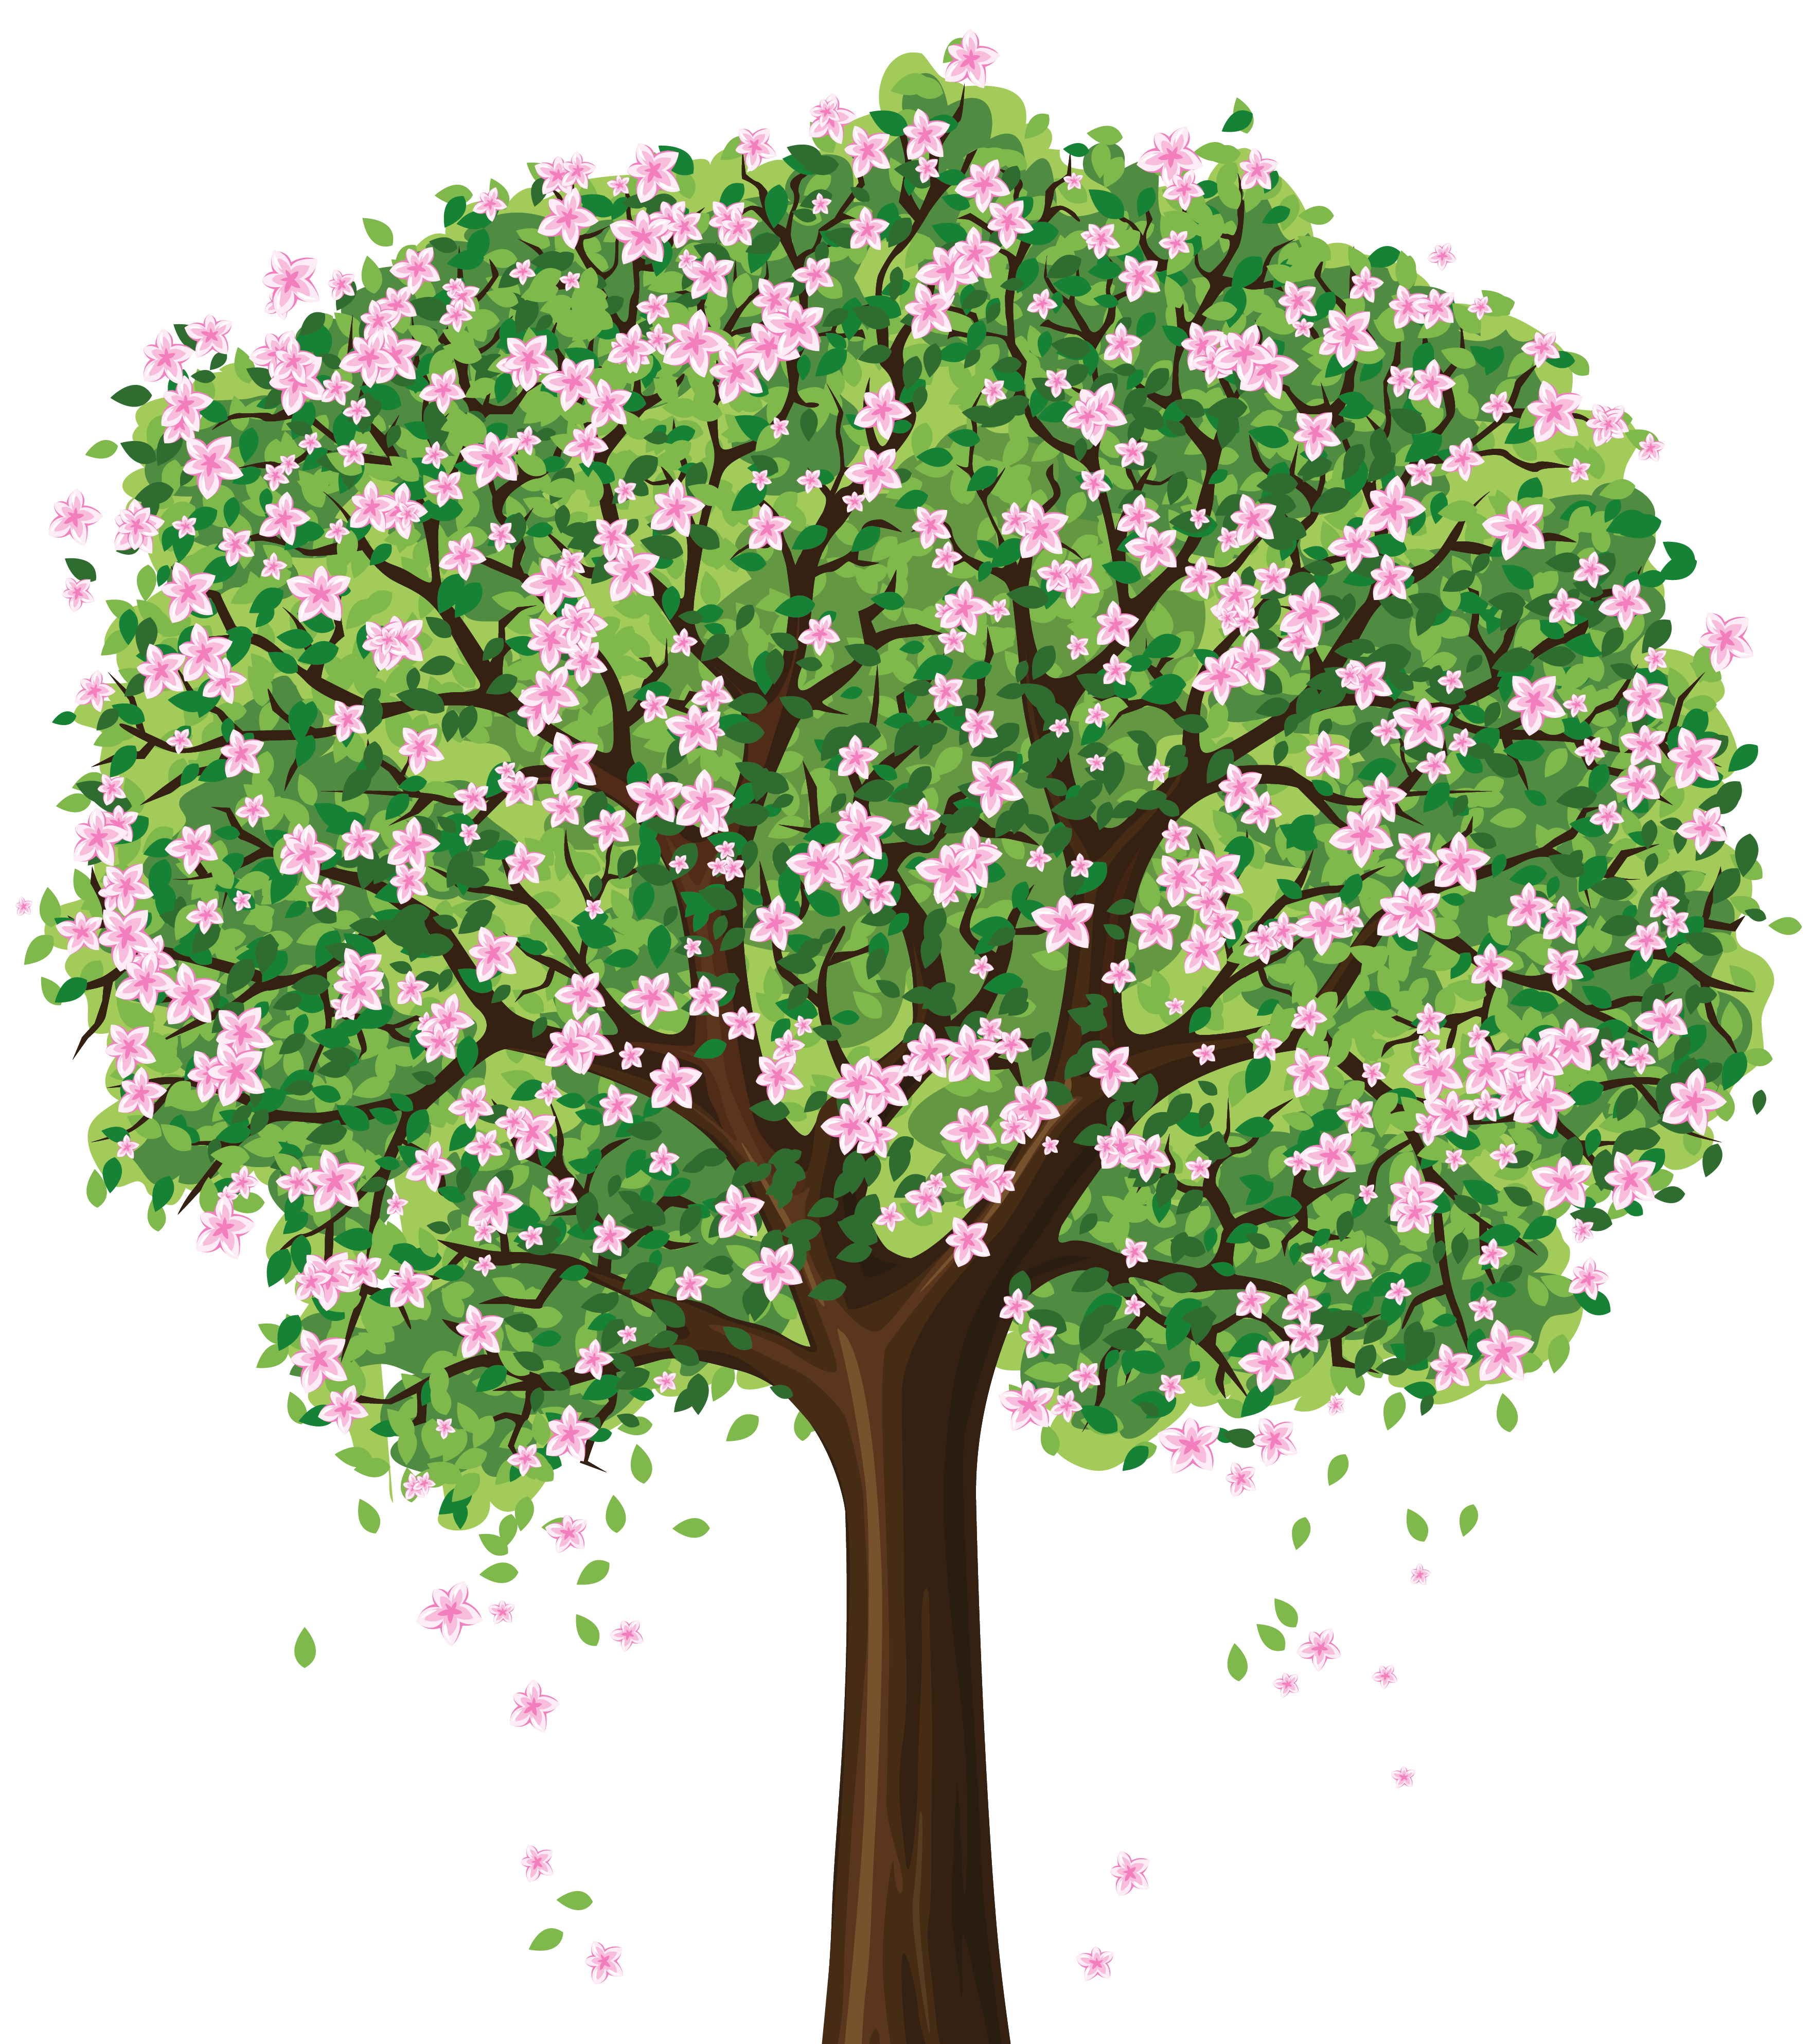 Life clipart prayer tree. Spring png projects to